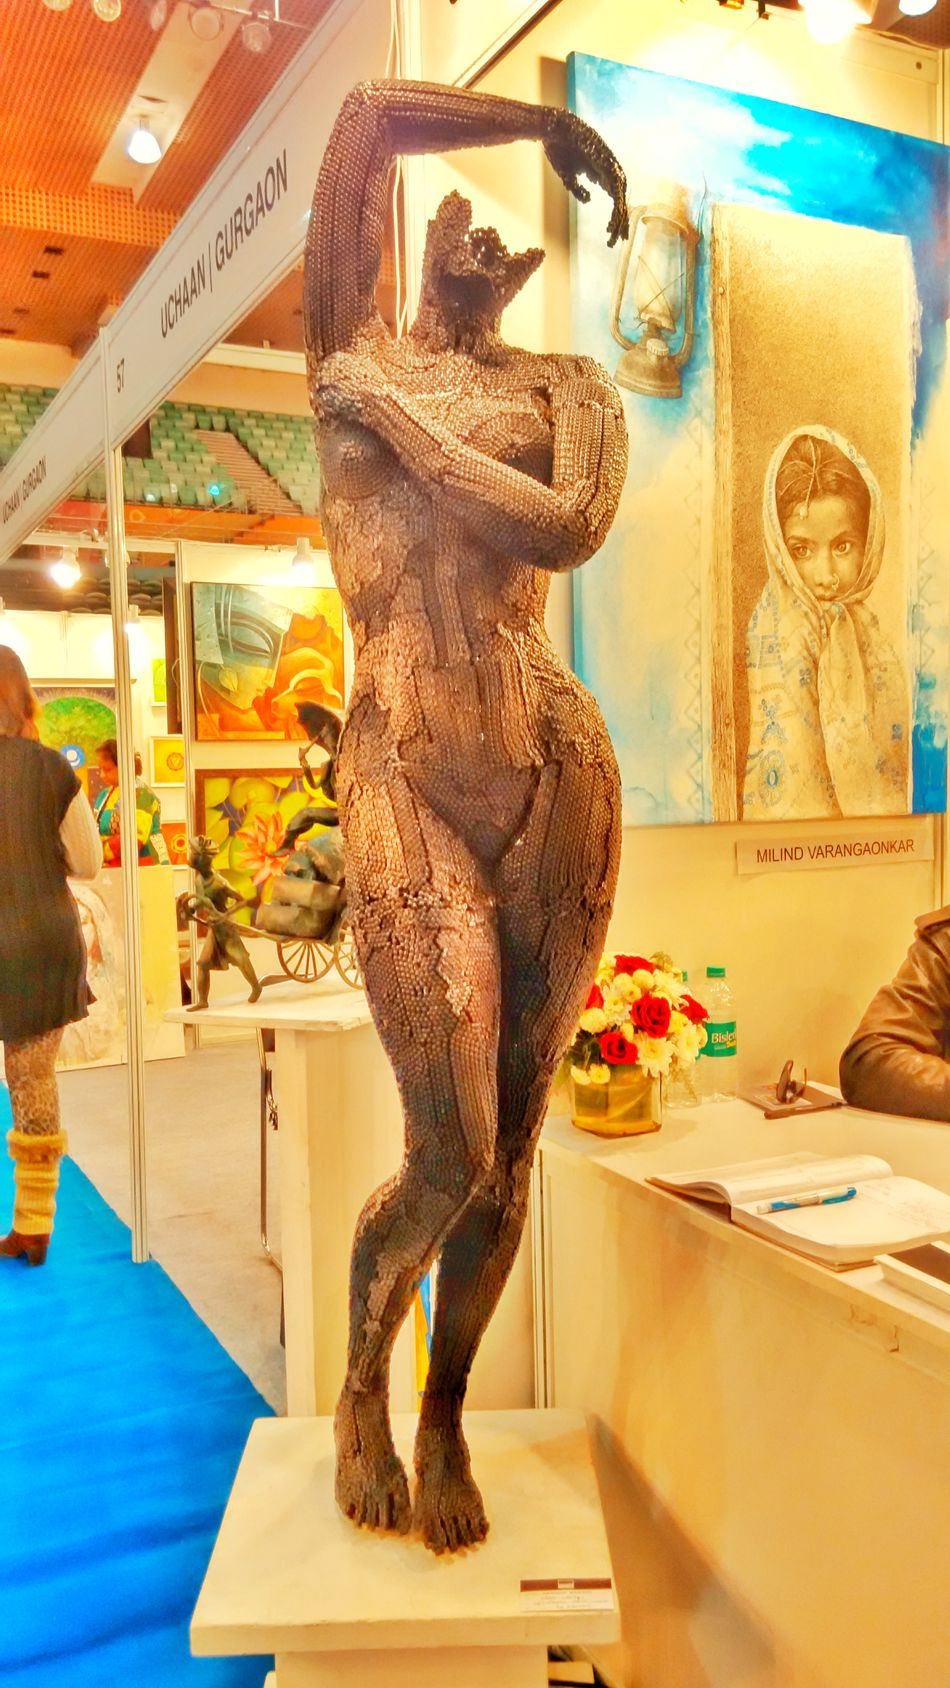 Statue Sculpture Metalart Portrait Of A Woman Art In Search Of Incredible From My Point Of View Full Length Uniqueness